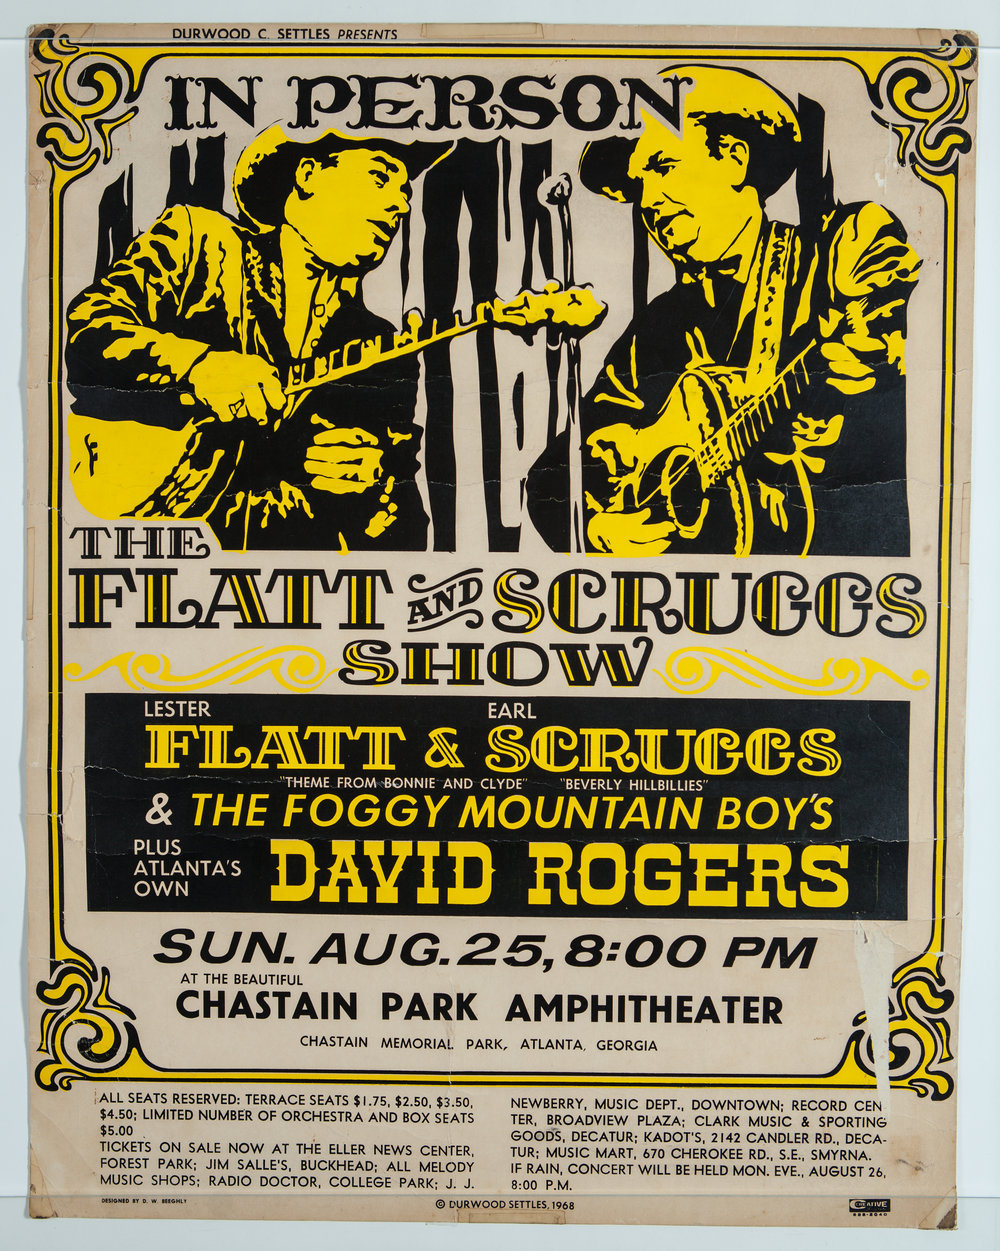 The Flatt and Scruggs Show